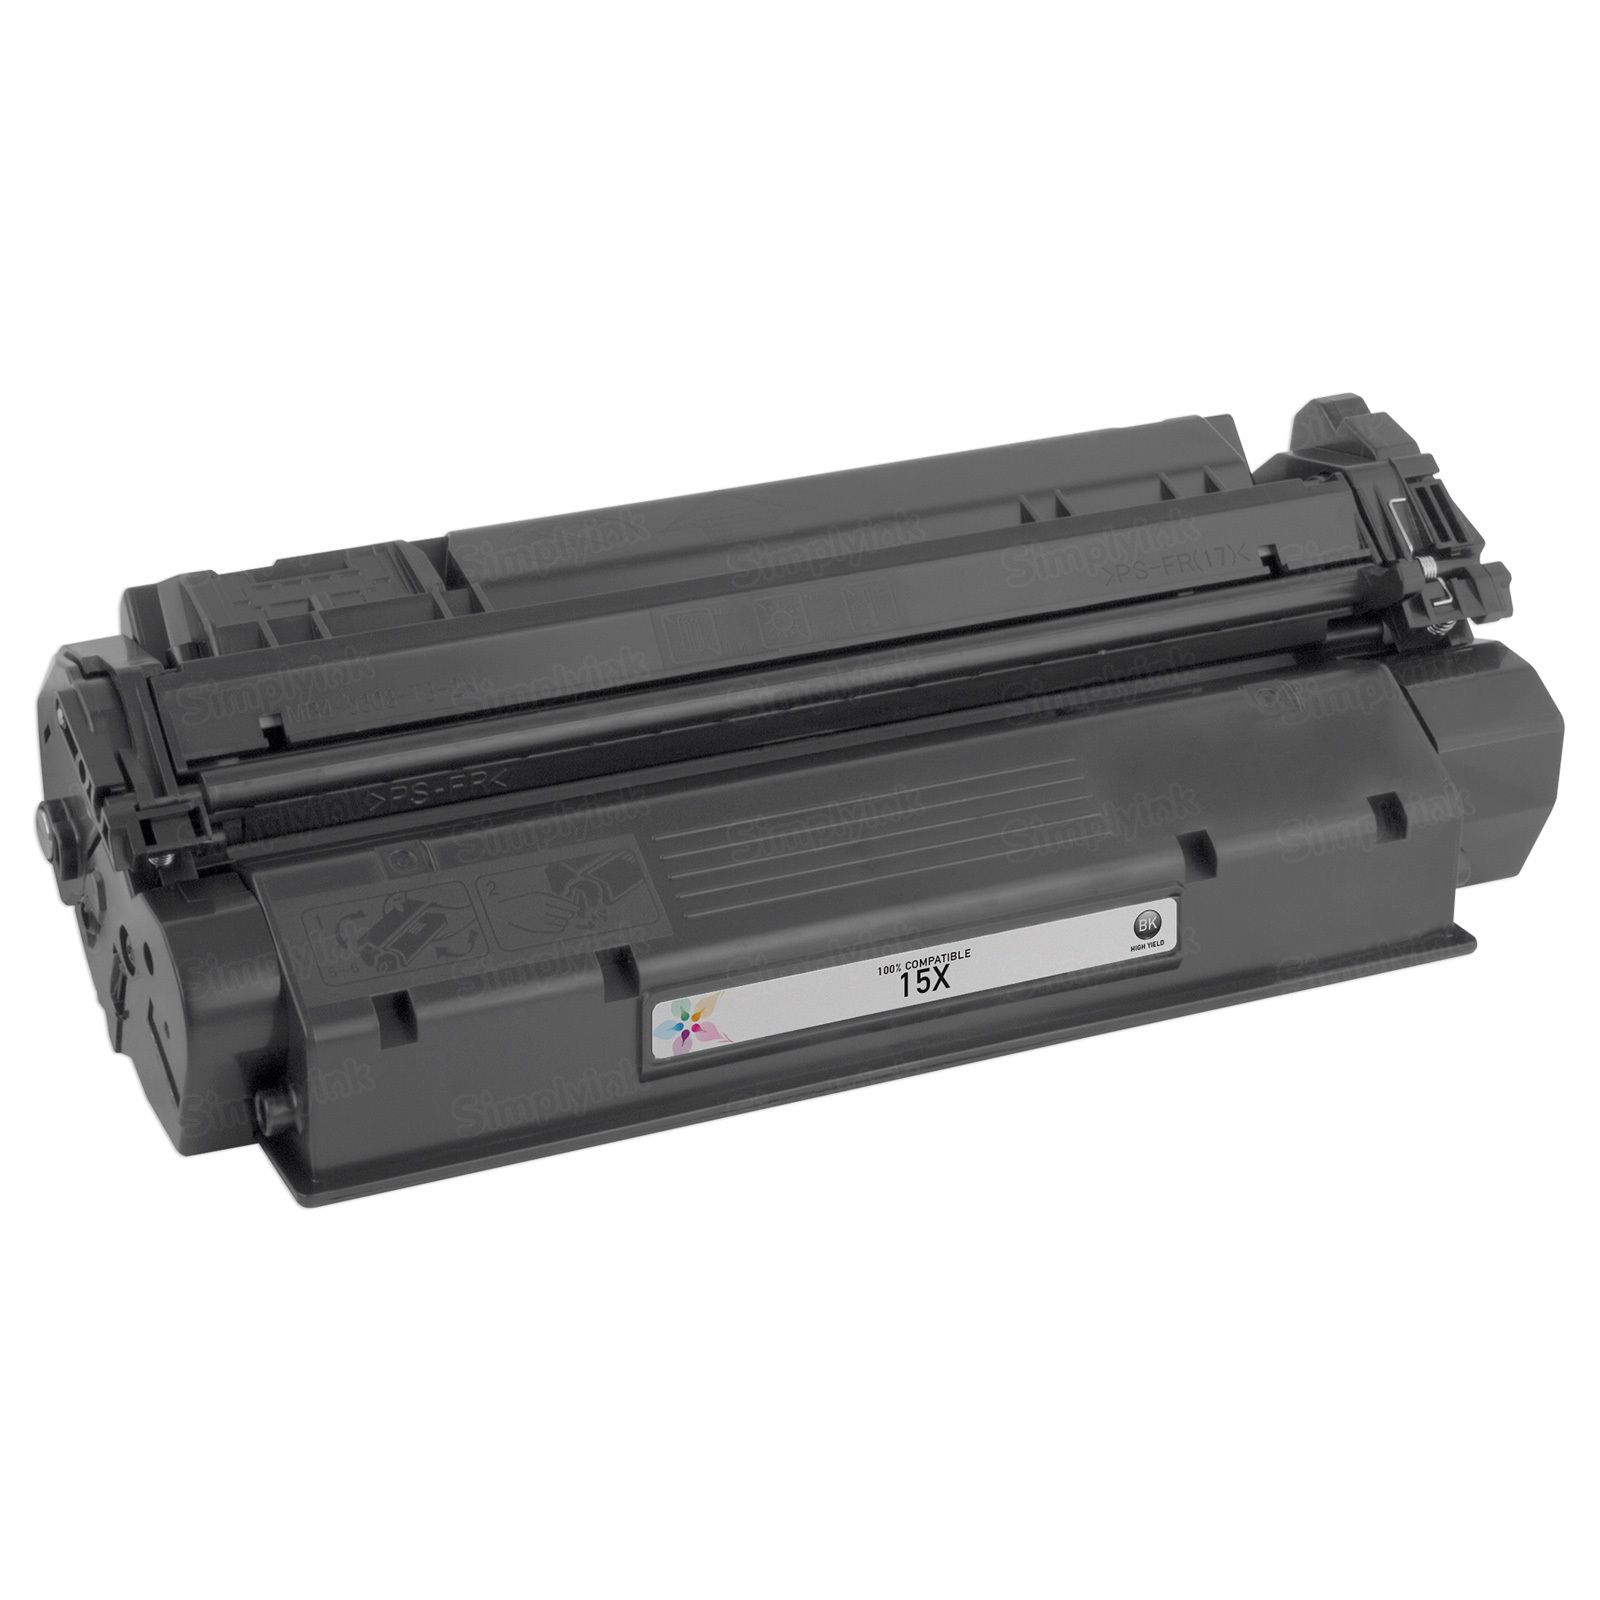 Replacement HY Black Toner for HP 15X